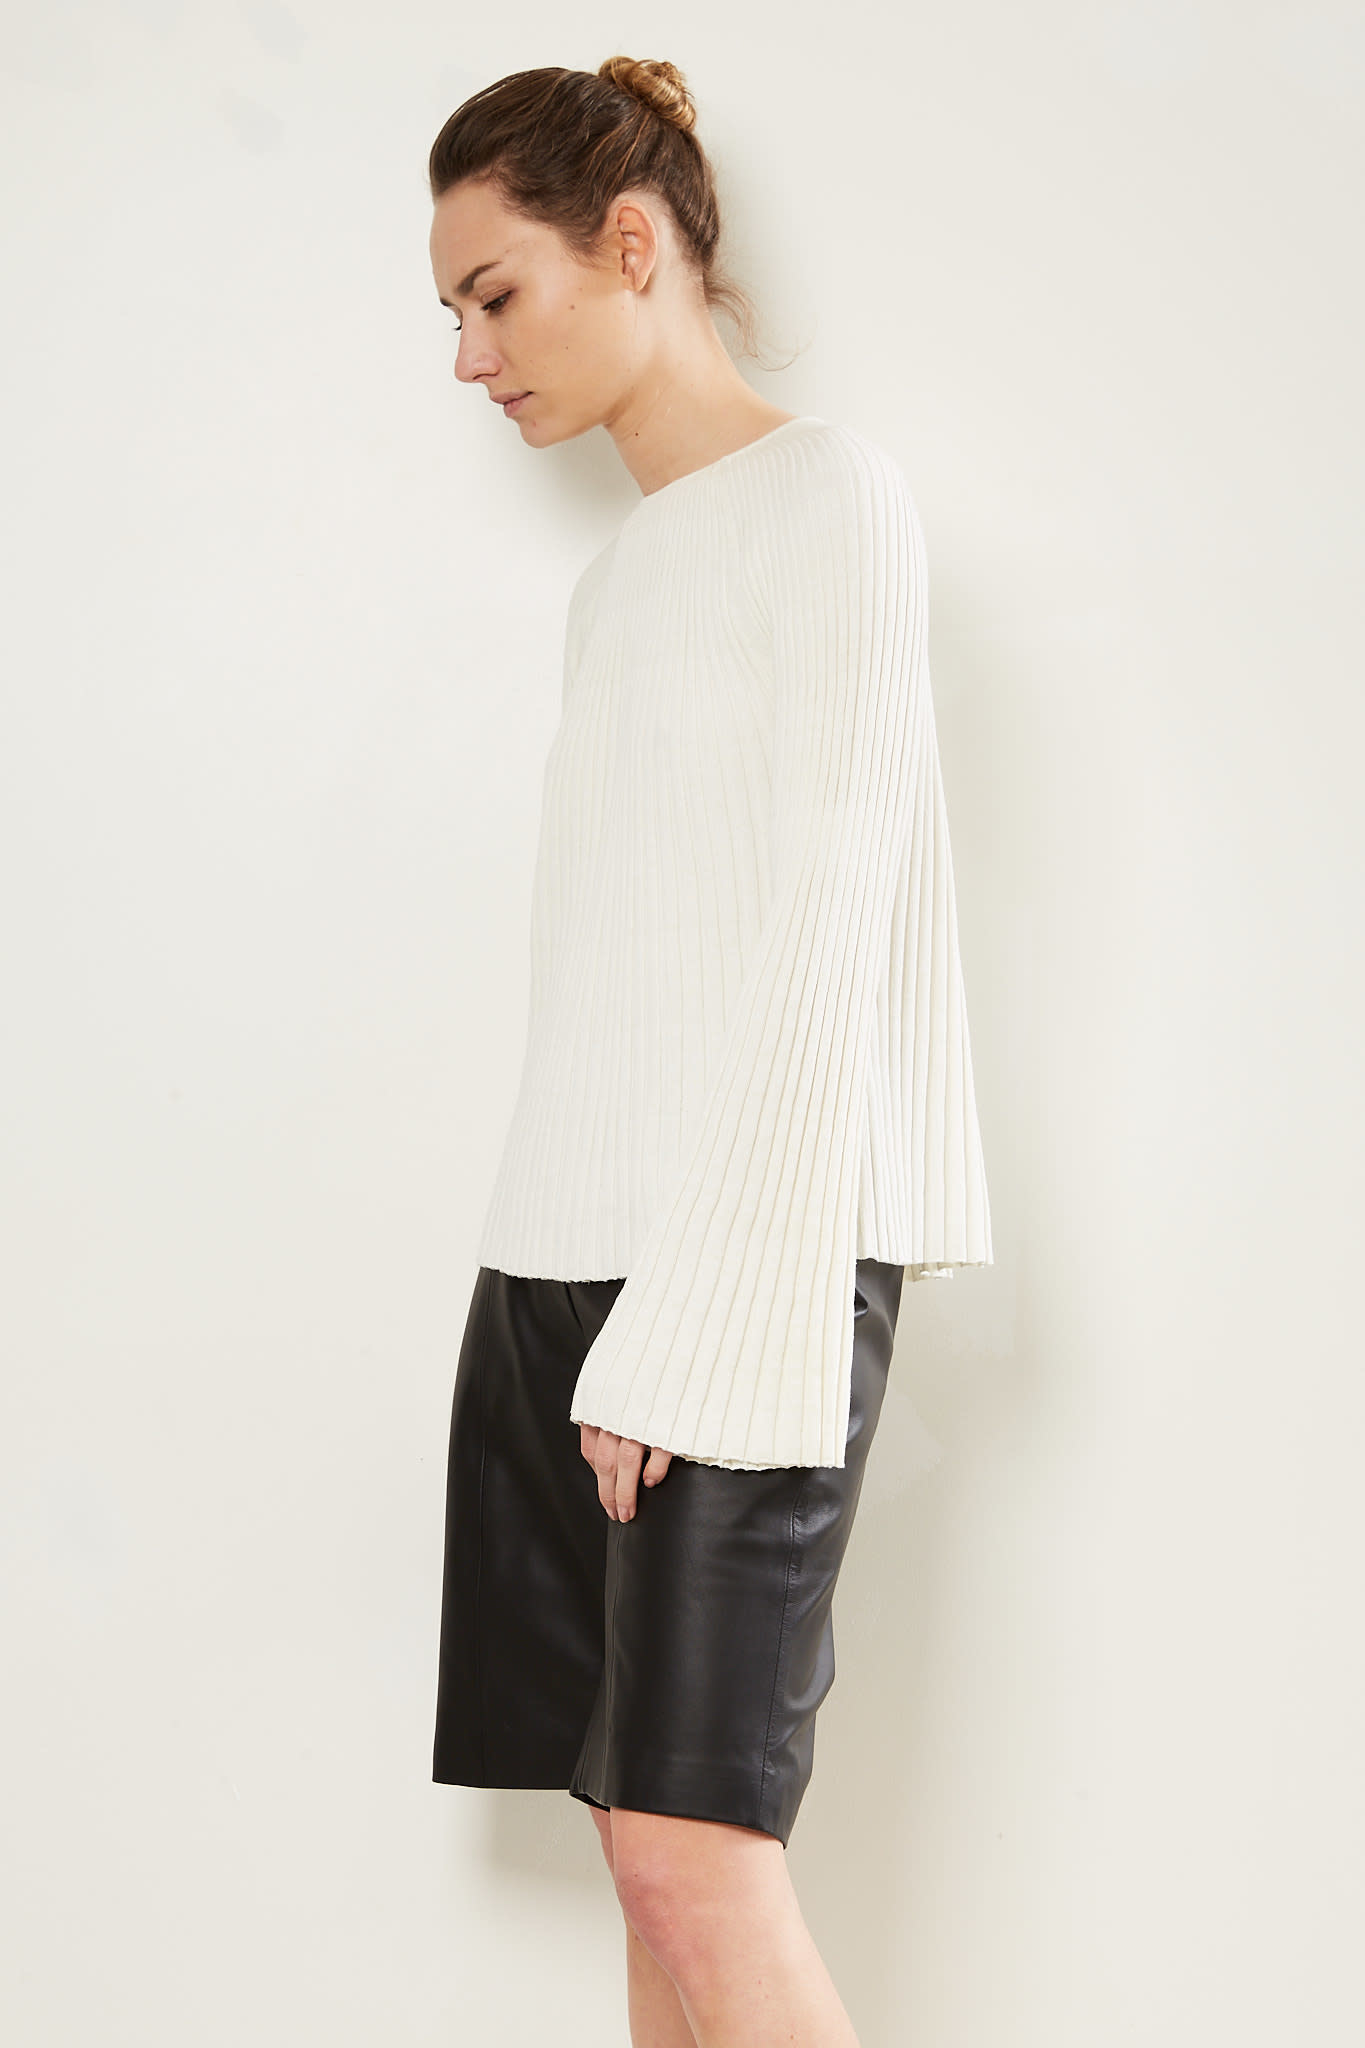 loulou studio - Hairan knitted top